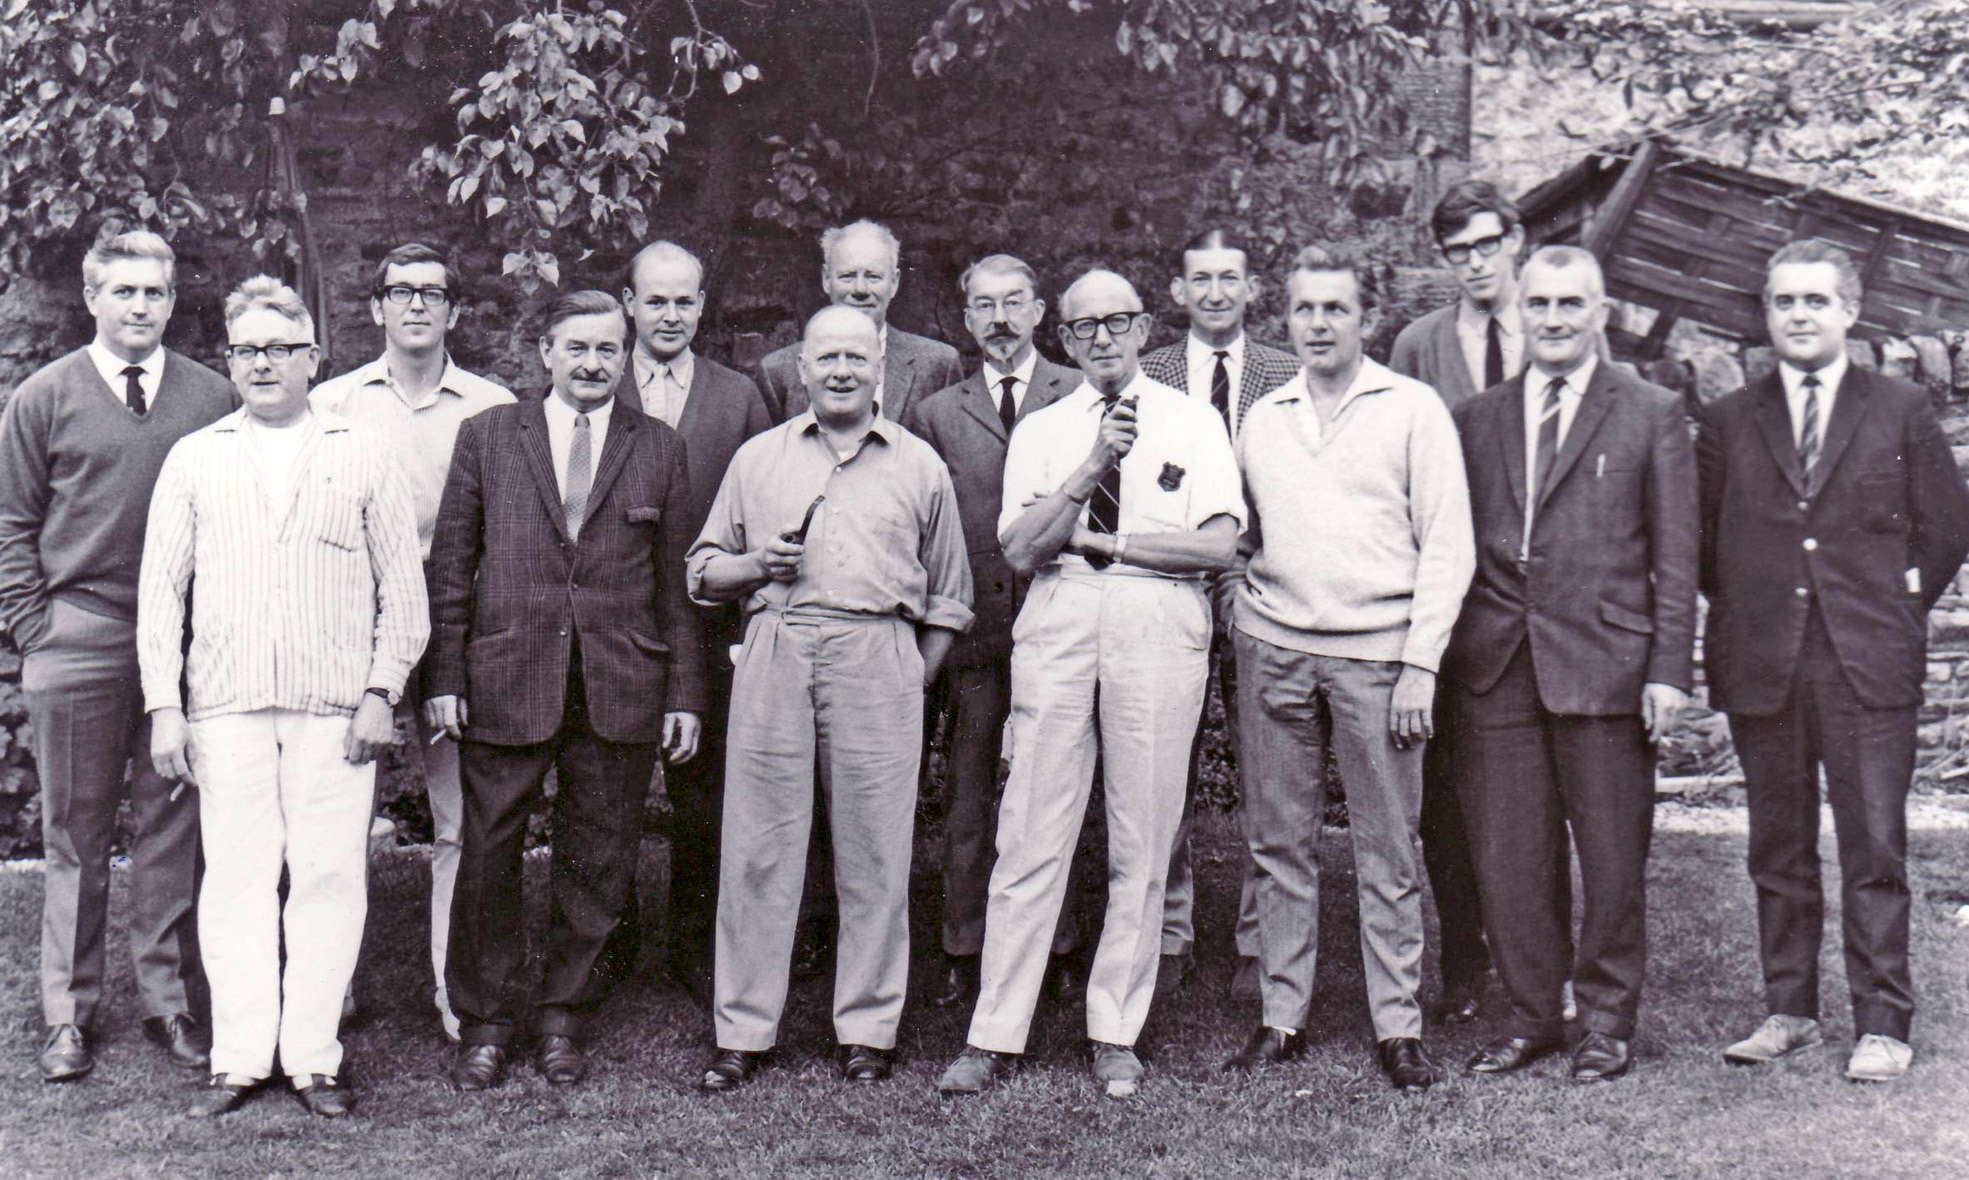 Burnsall Feast Sports Committee 1965, taken in the Red Lion garden